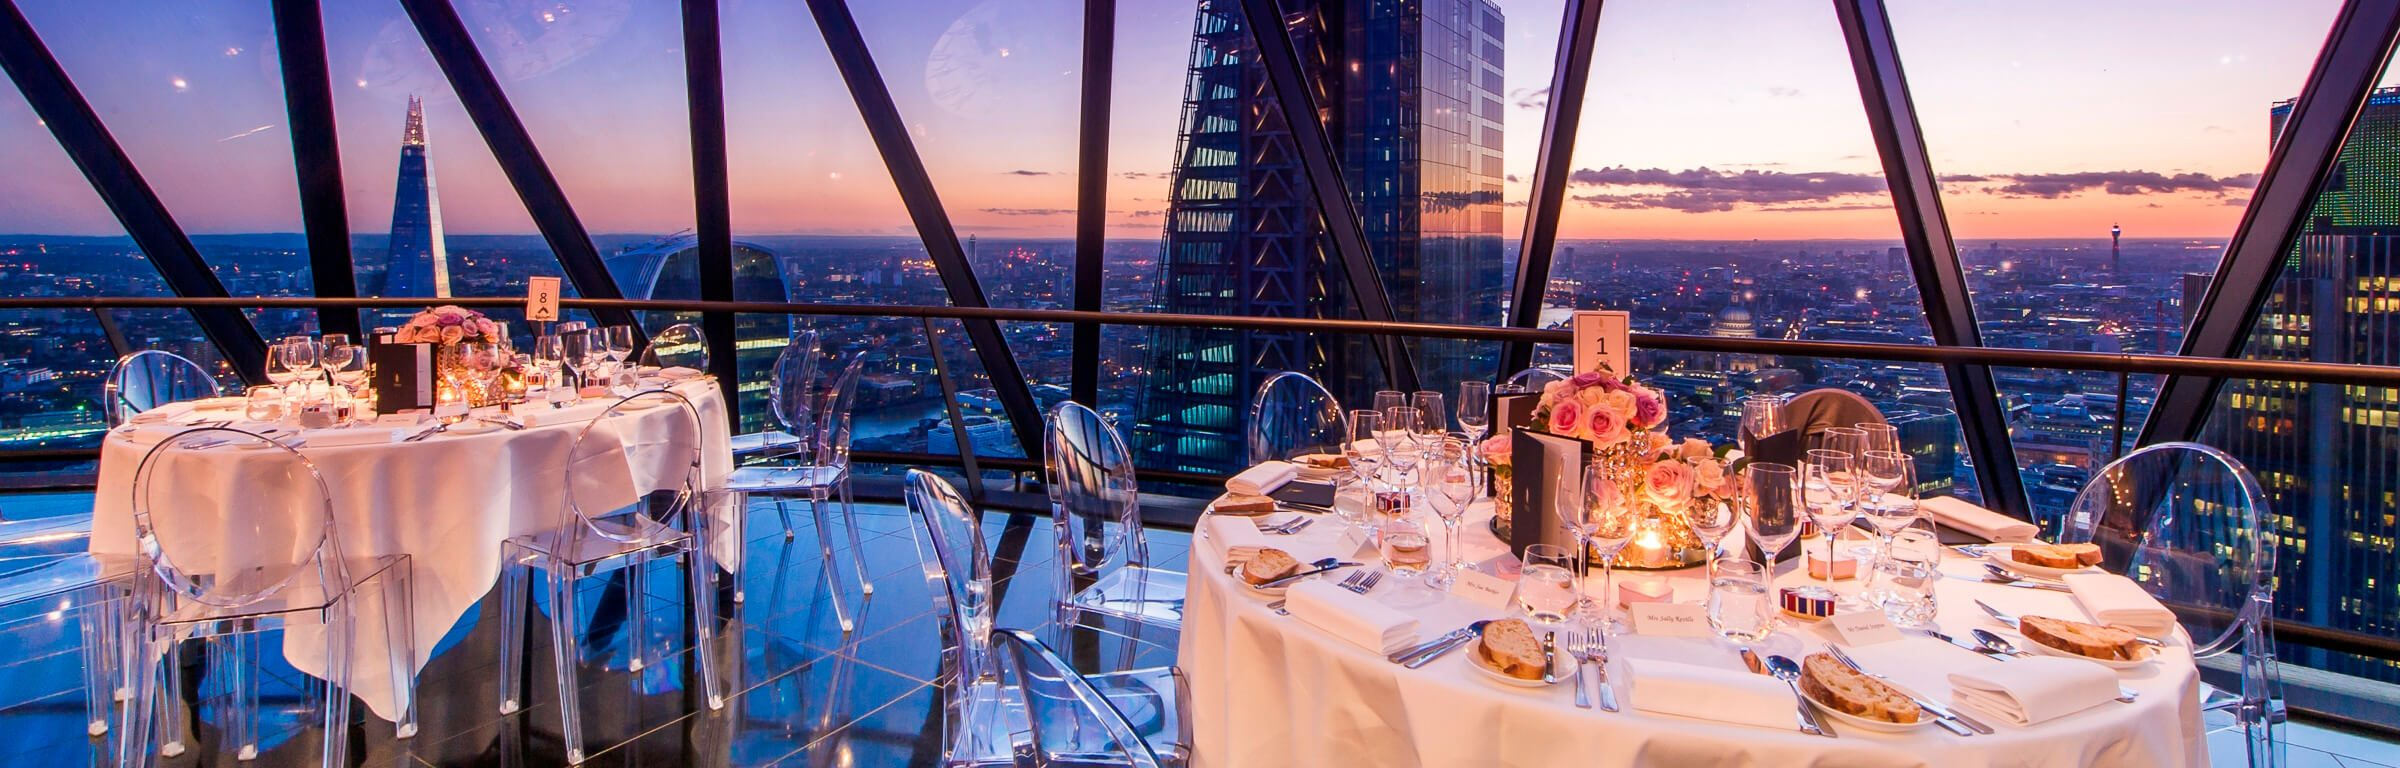 Weddings - Searcys at the Gherkin